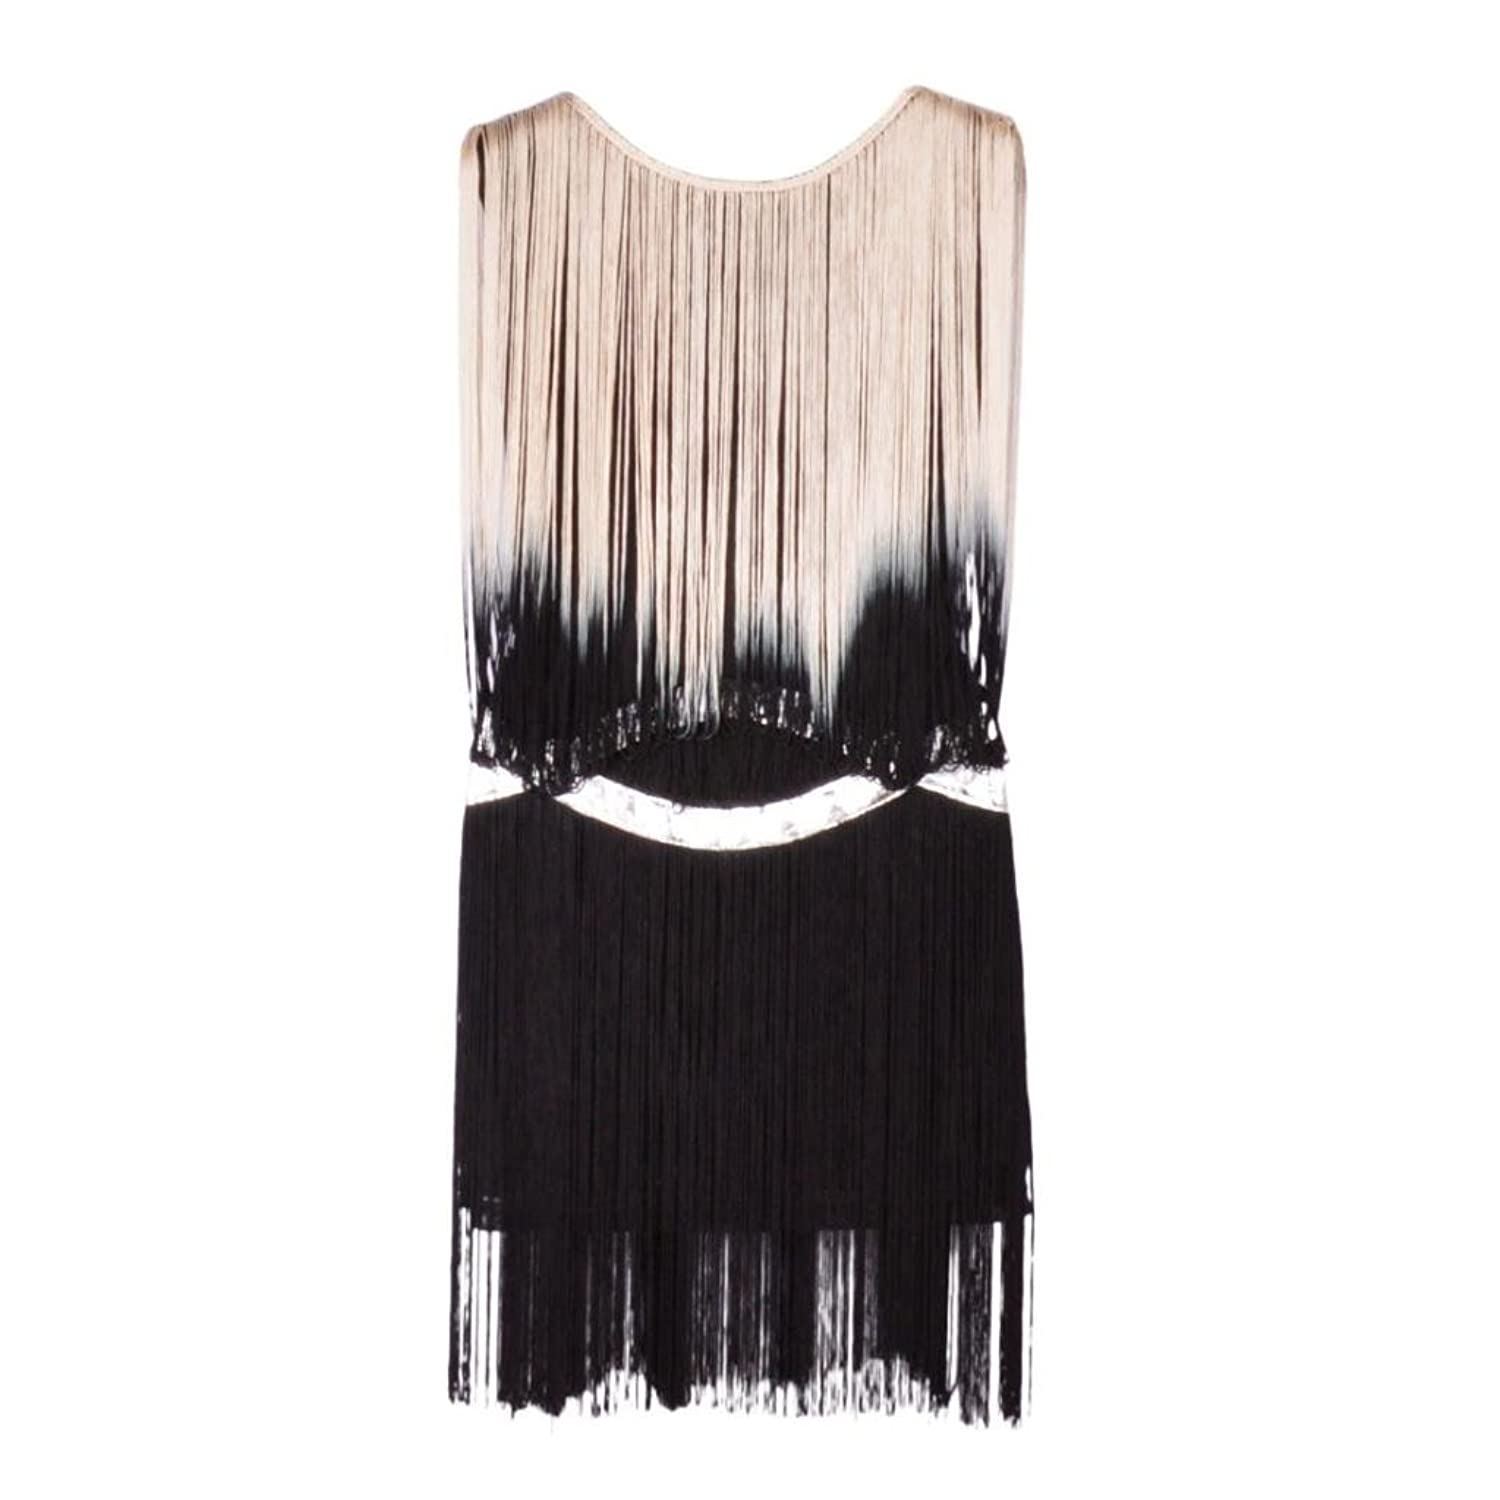 Eyekepper Women's Organza Fringe Silver Trim Drop Waist Dress